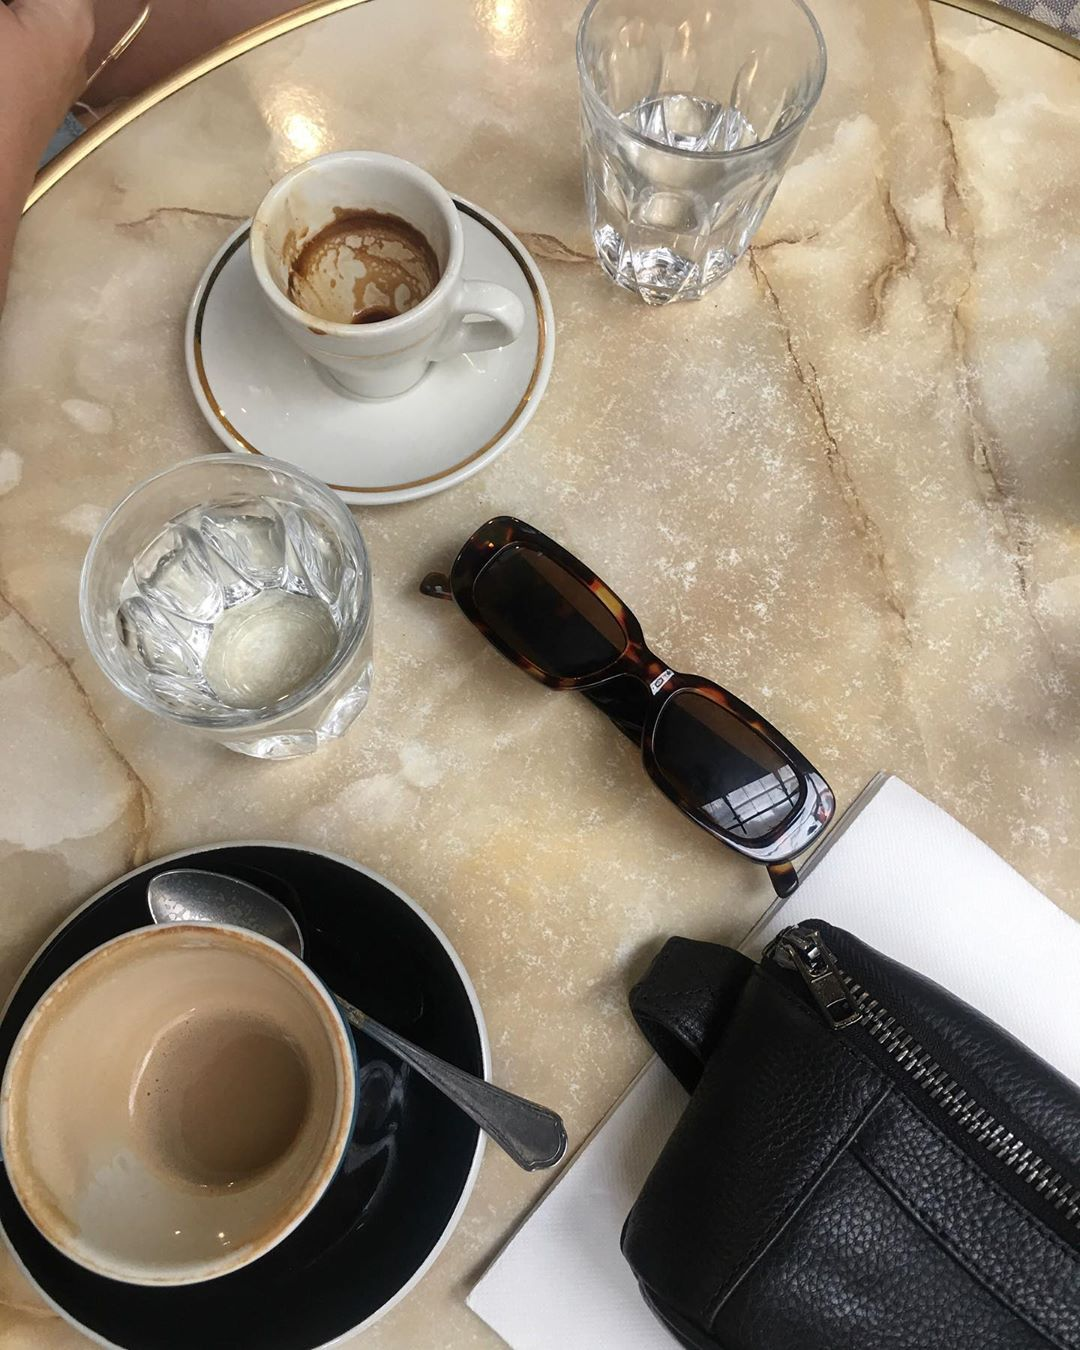 Klara On Instagram Have Been Bedridden With Tonsillitis This Week So I M Just Over Here Dreaming About My Next Coffee In 2020 Coffee Obsession Coffee I Love Coffee